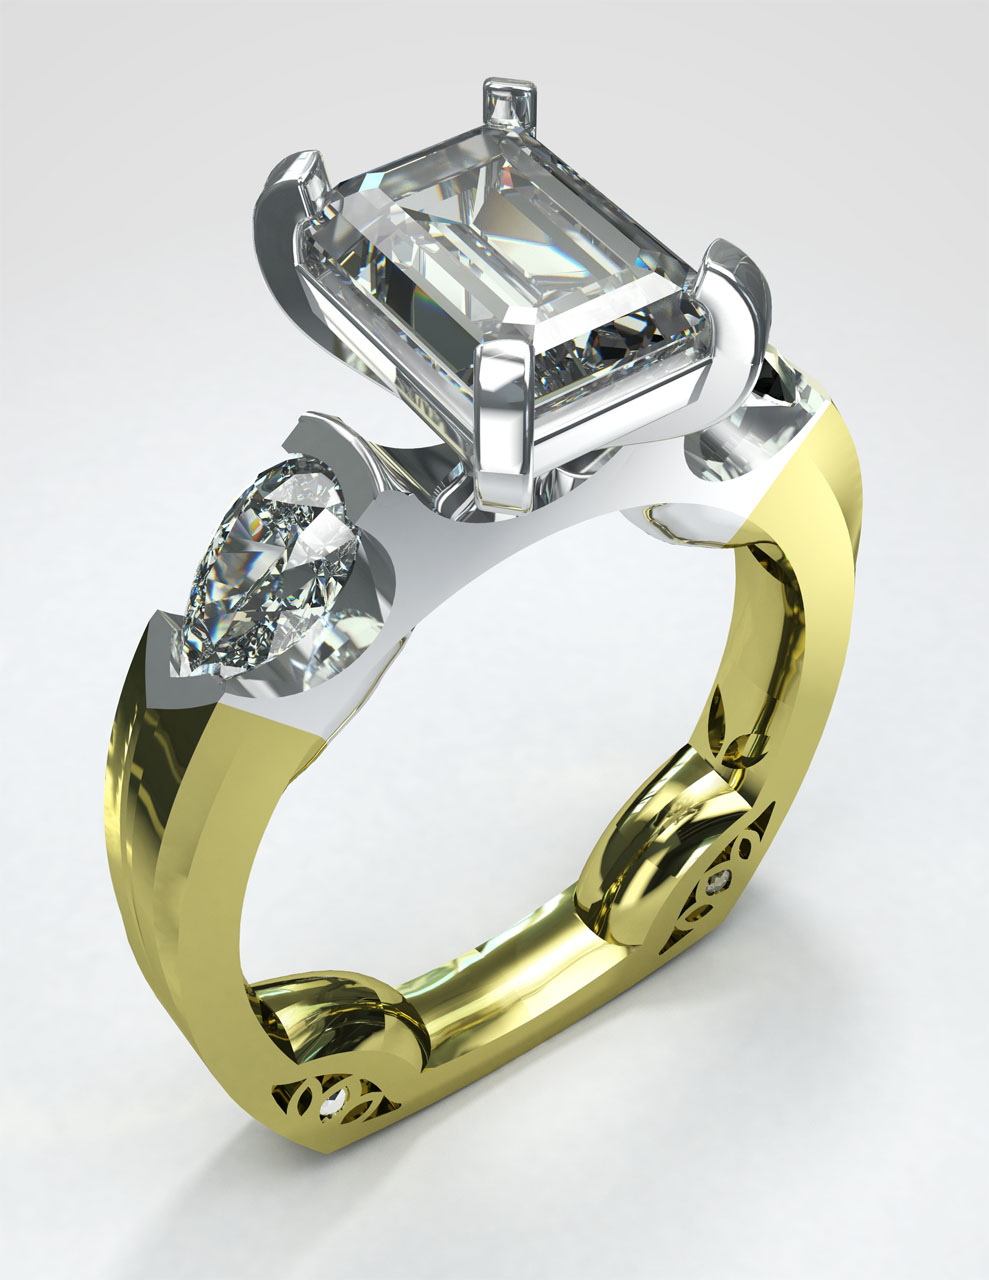 3D rendering of an ornate ring including a large solitaire diamond with two pear cut smaller diamonds on a platinum setting with a gold band.